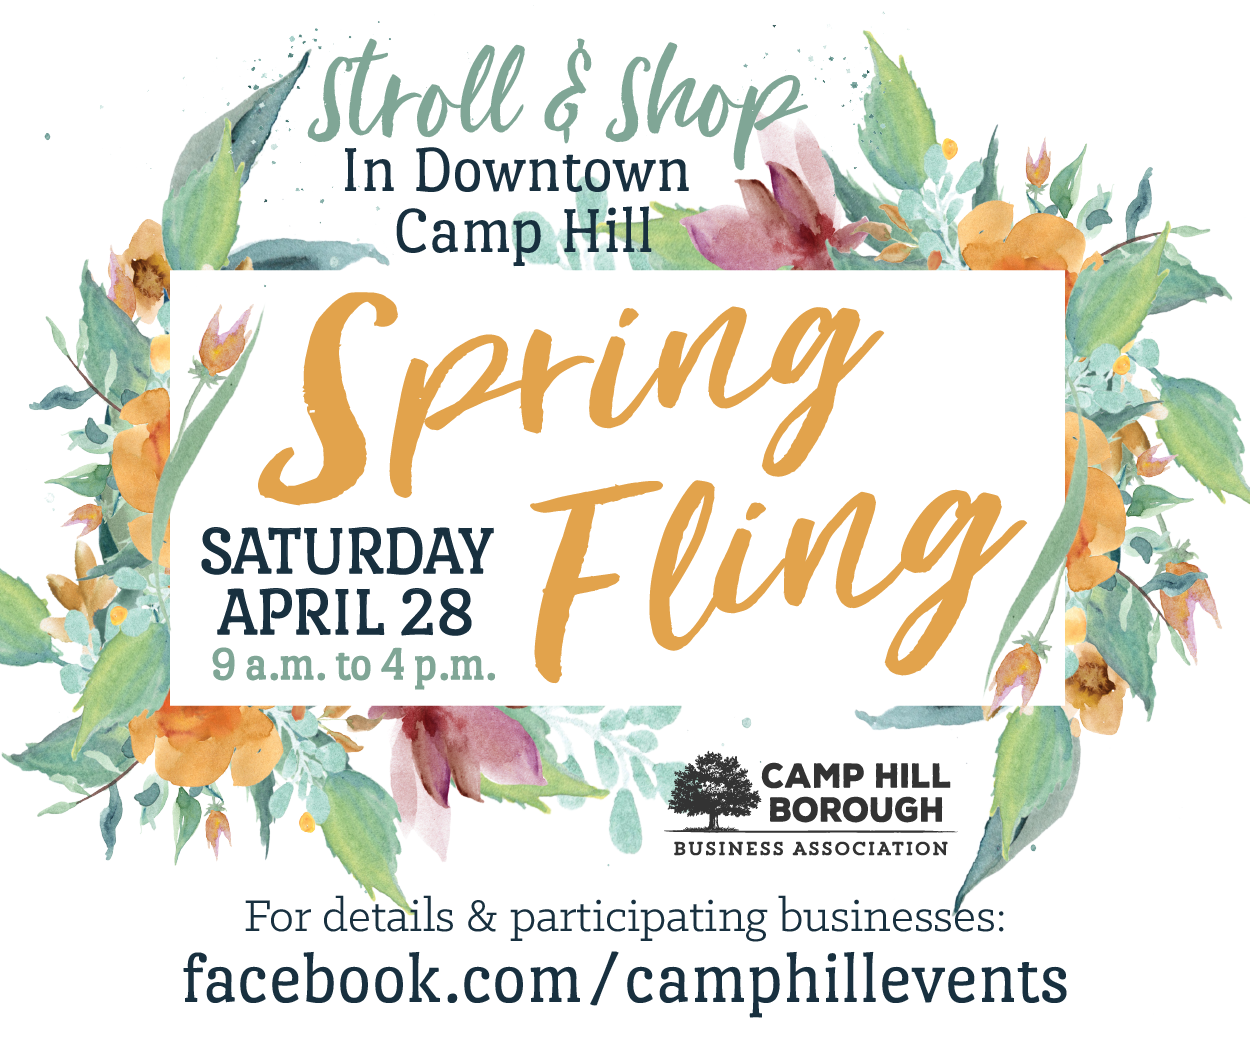 Spring Fling Stroll Amp Shop In Downtown Camp Hill April 28